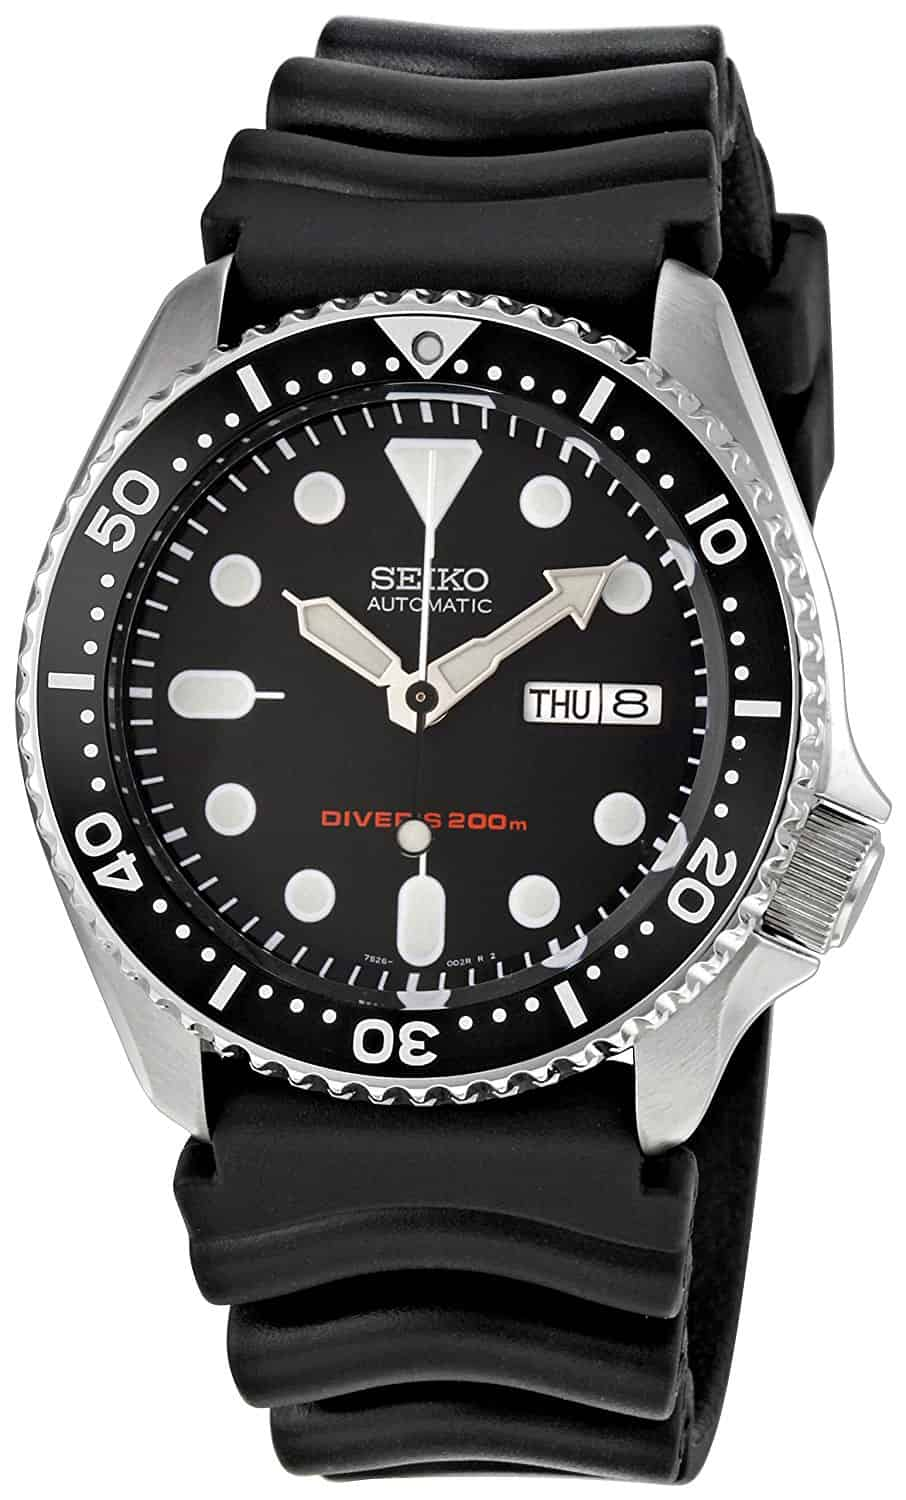 Seiko SKX007k Divers Watch